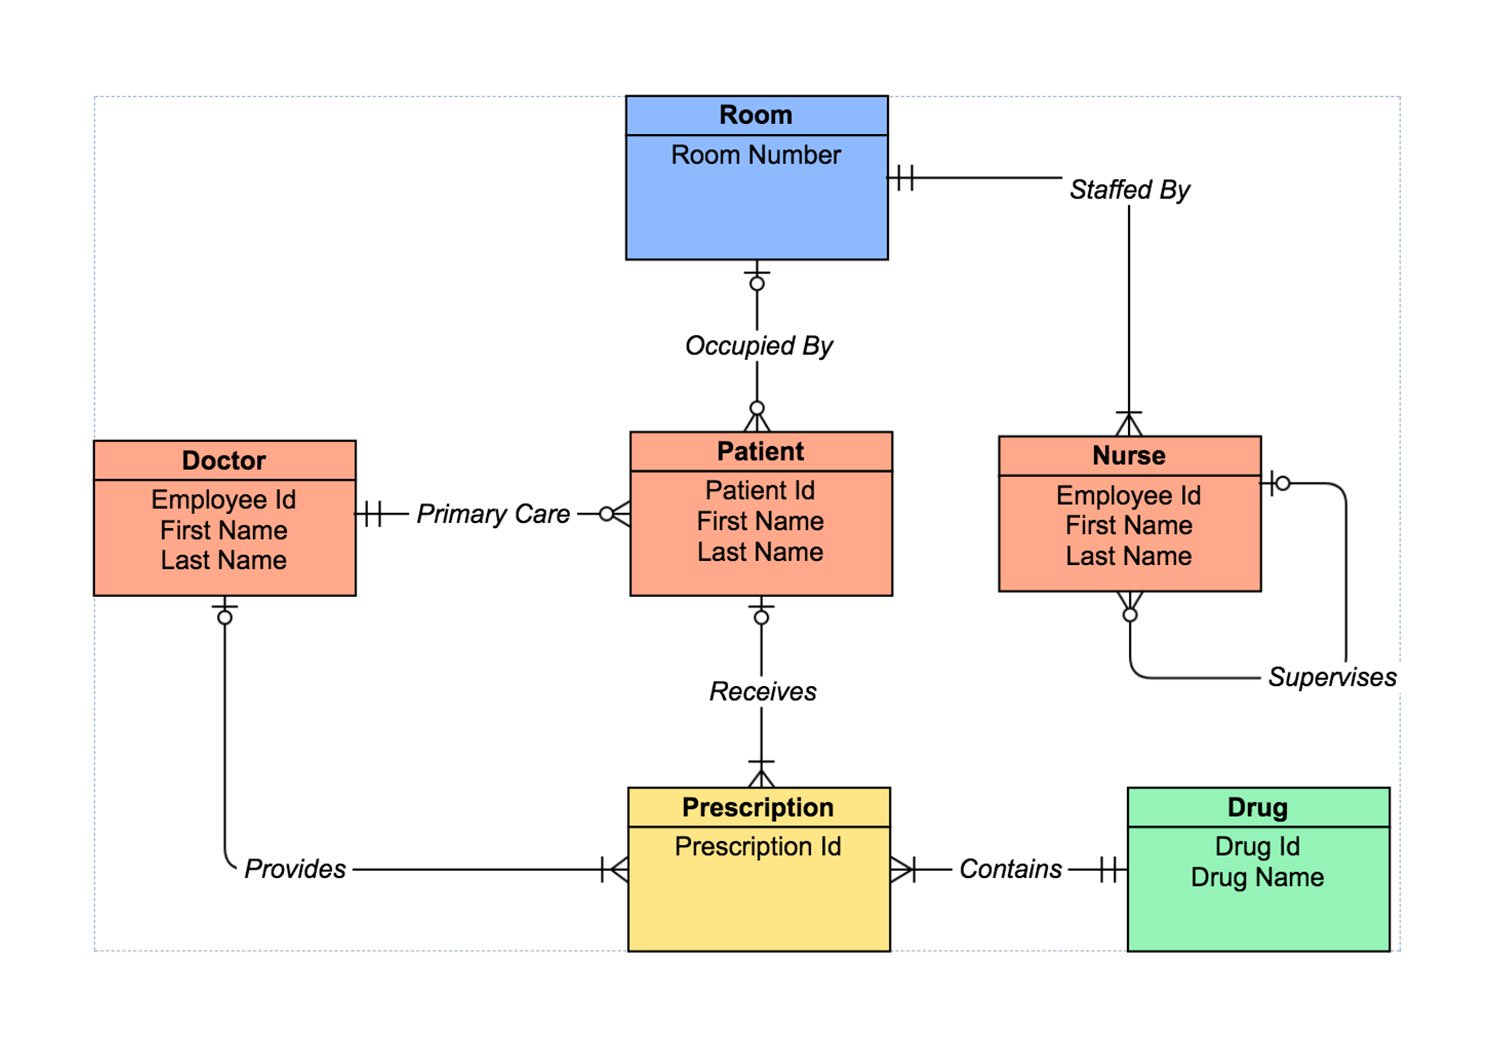 Draw Entity Relationship Diagrams Online   Er Diagram Tool with regard to Online Data Model Diagram Tool